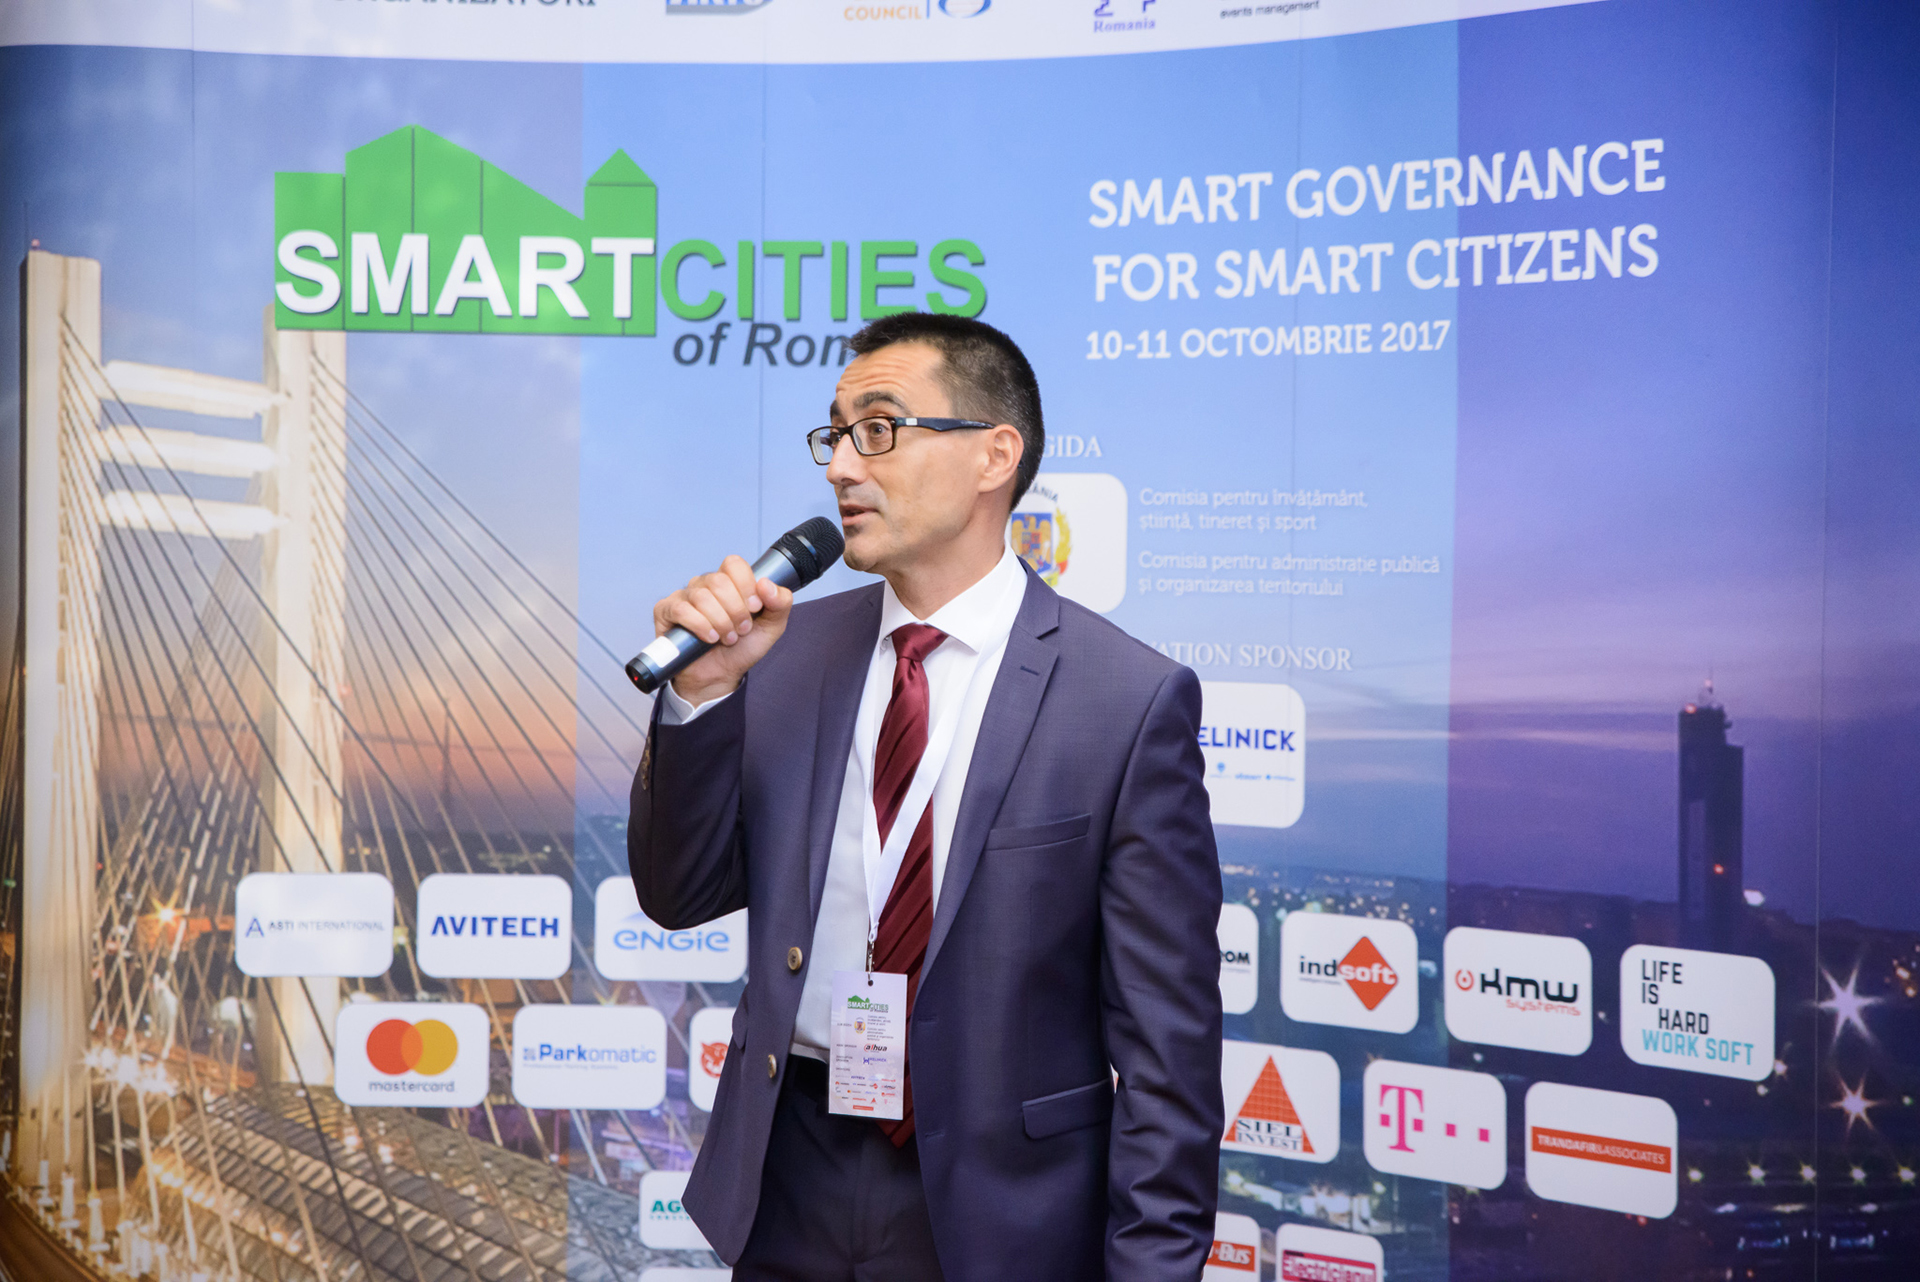 Smart-Cities-Of-Romania-2017---ITS-679